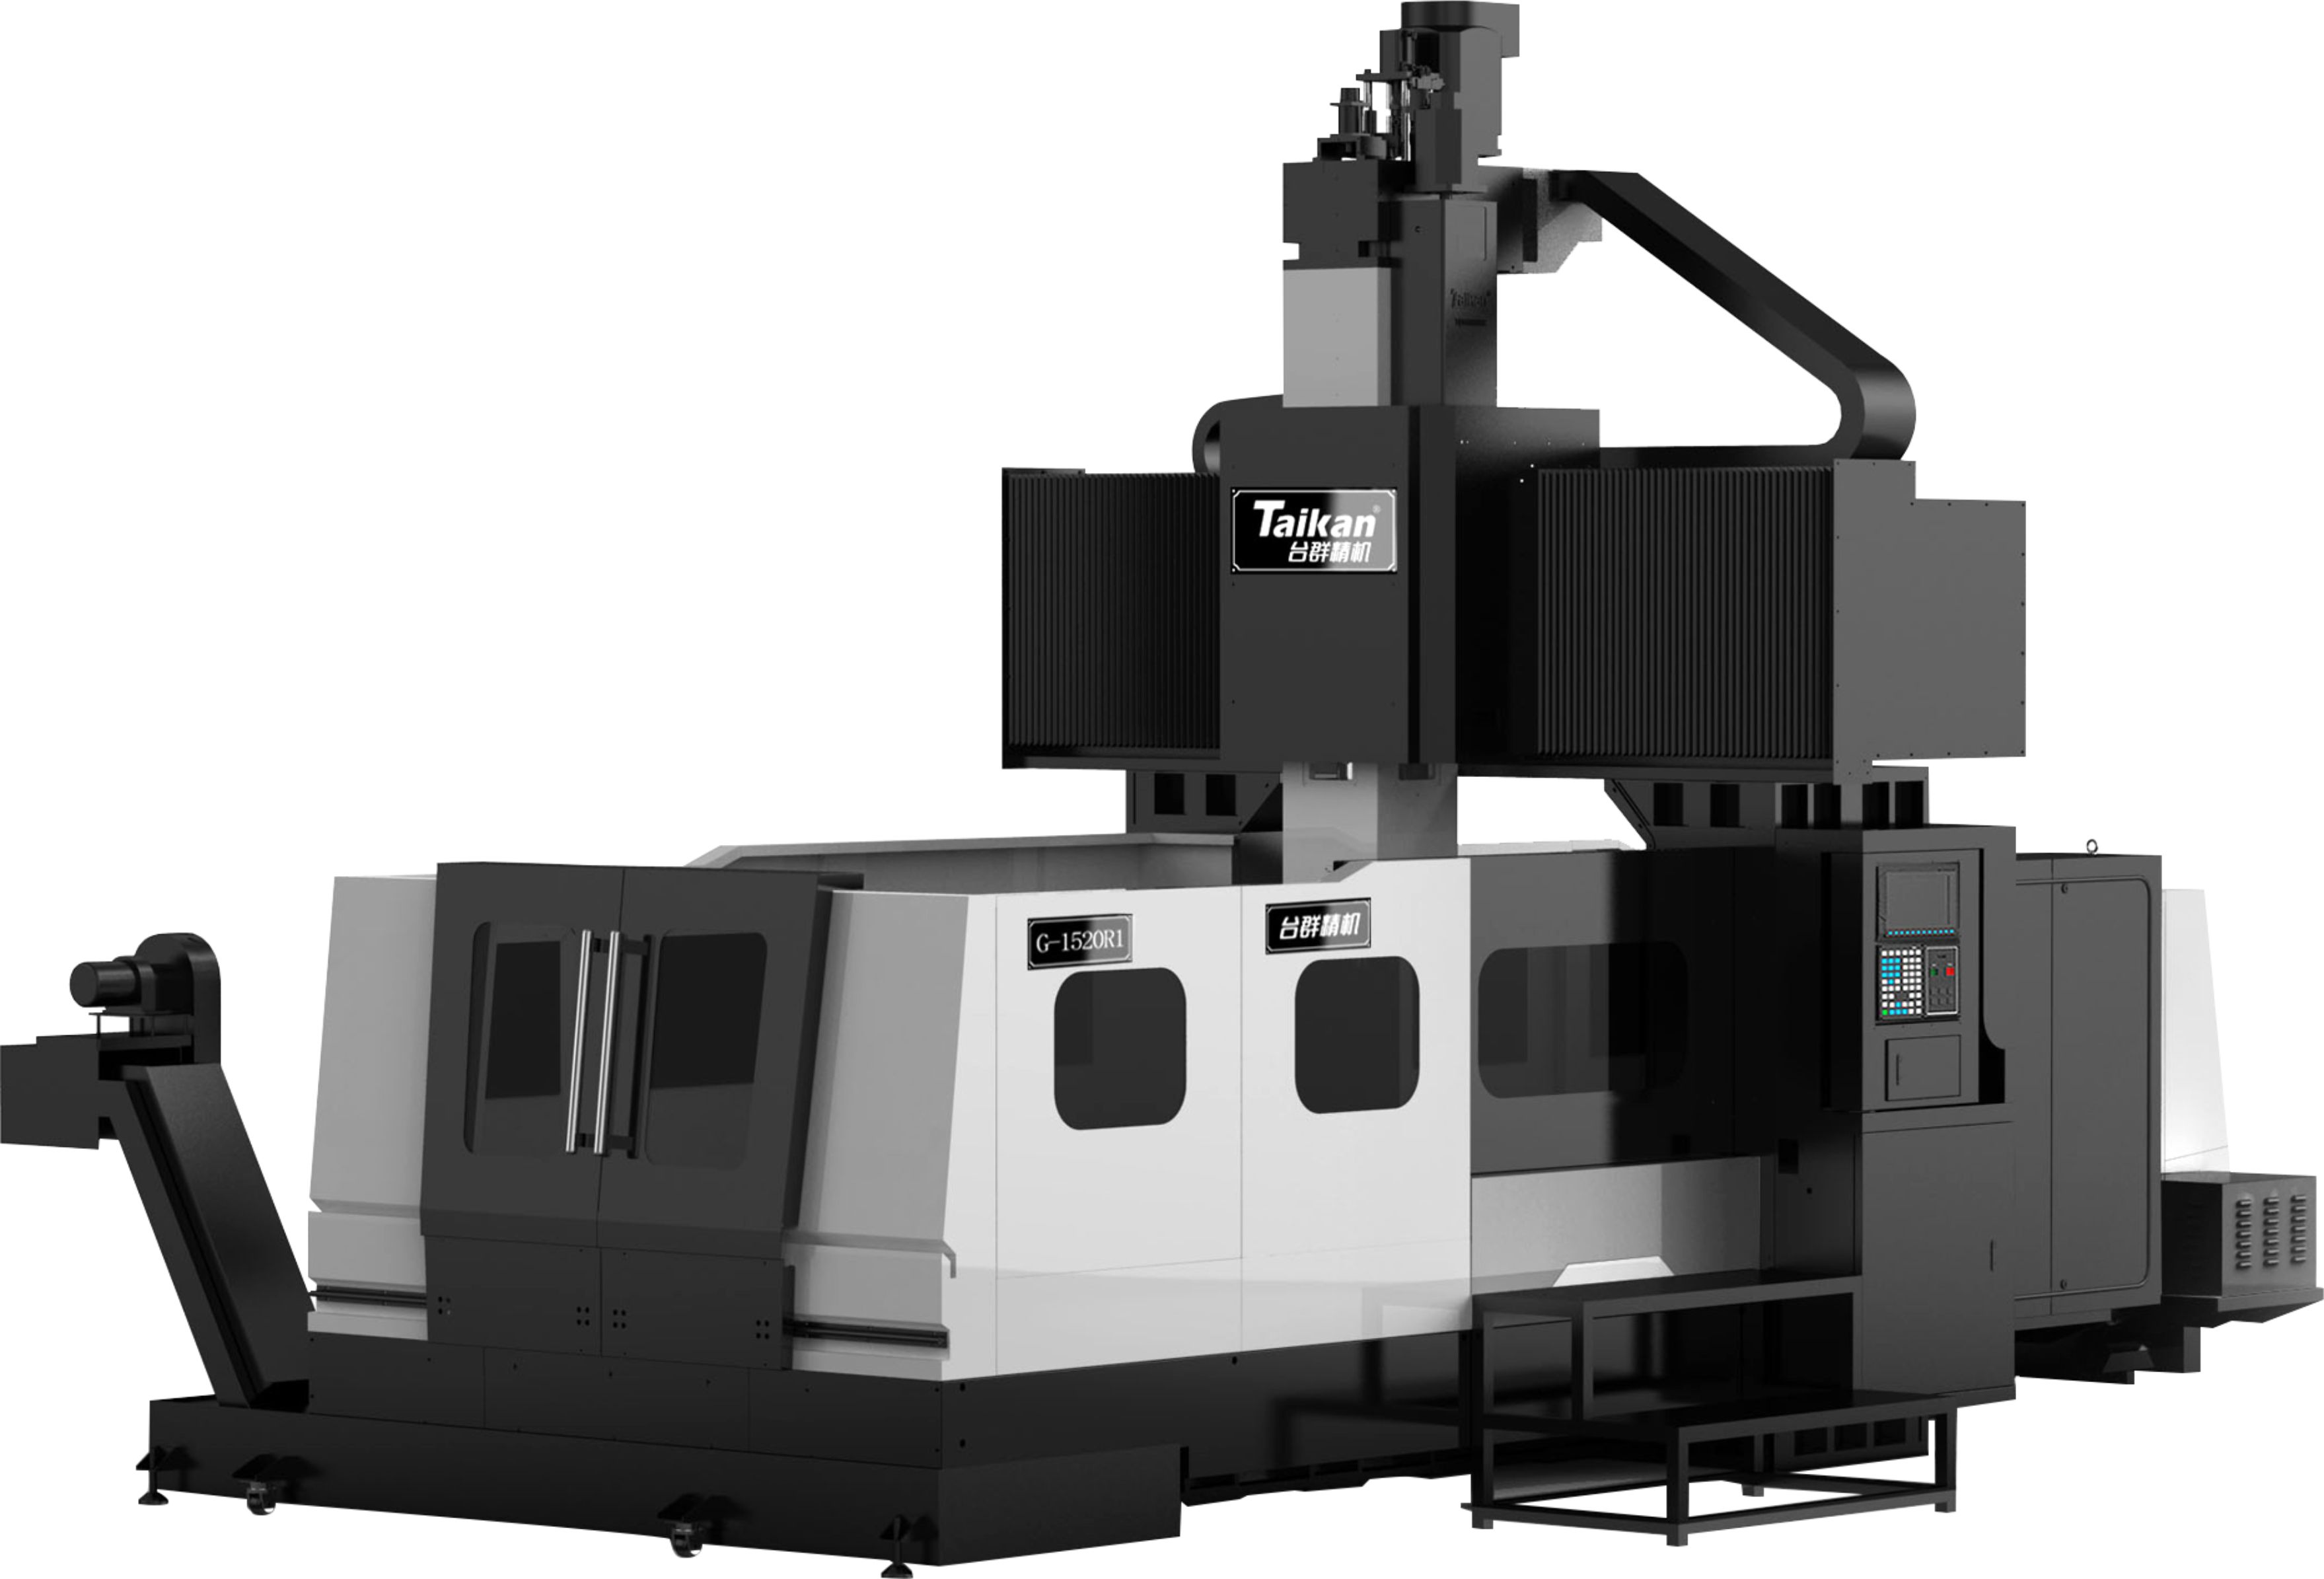 G-1520R1 Gantry Machine Center